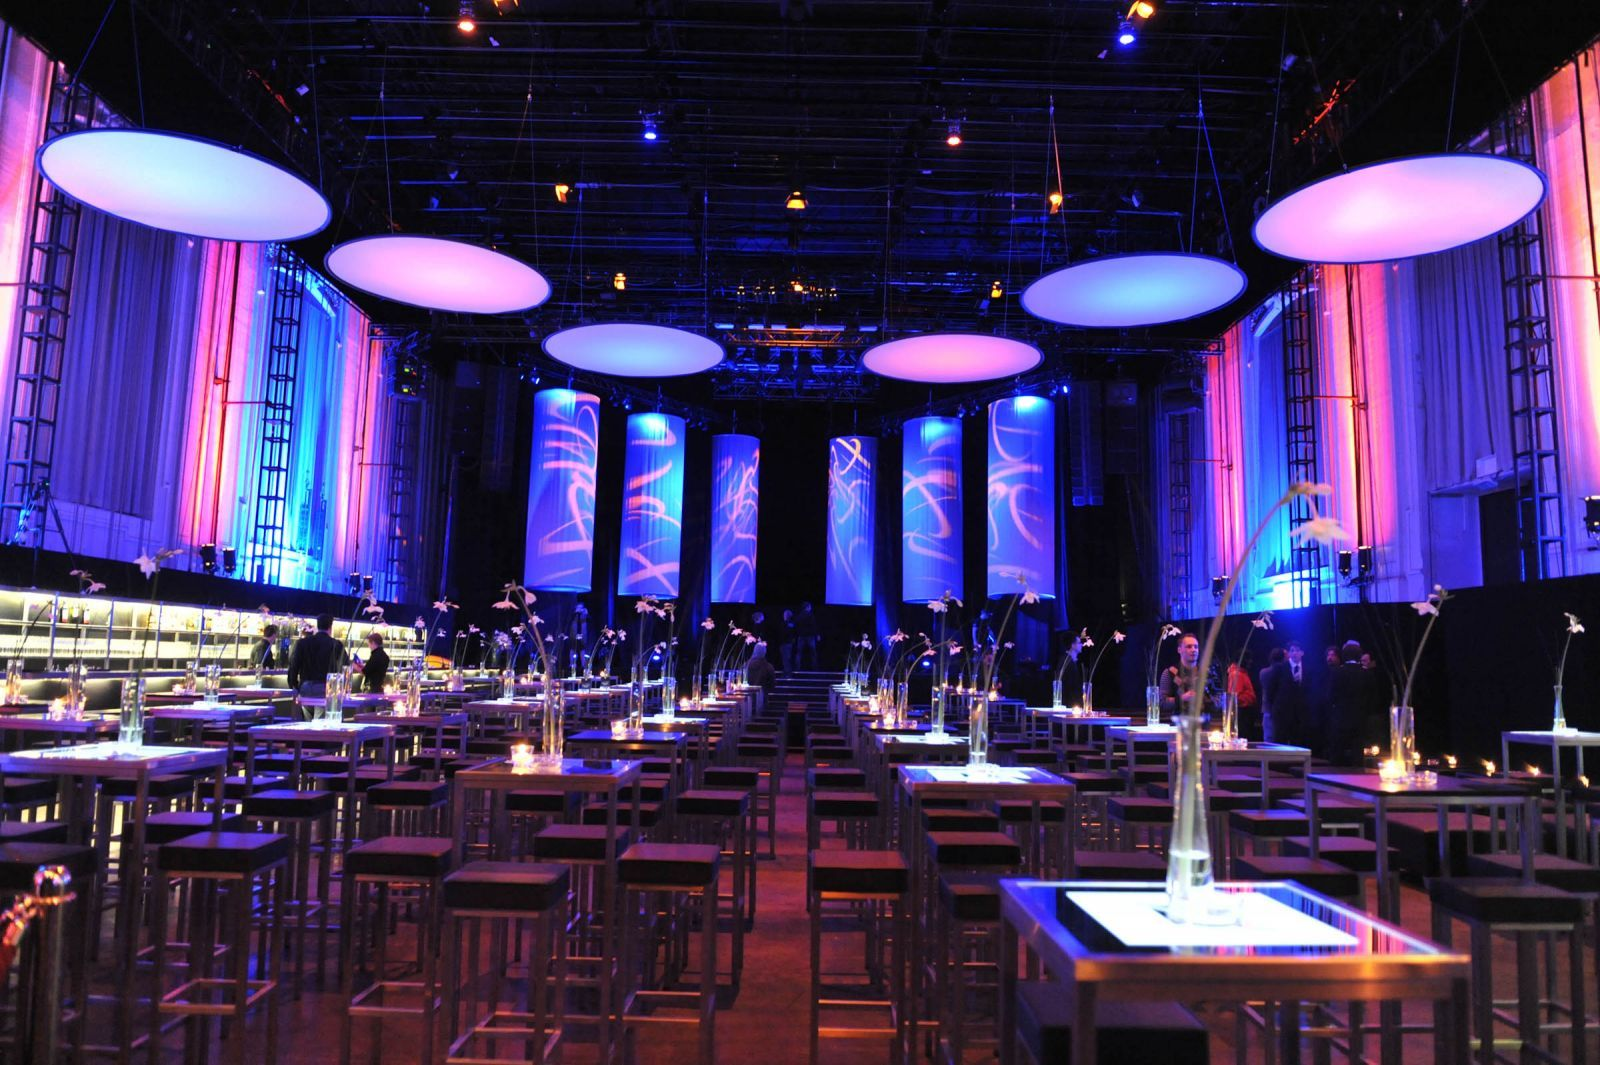 Wedding Events Ideas: Event Setting / Corporate Event; Hanging Ceiling Disks